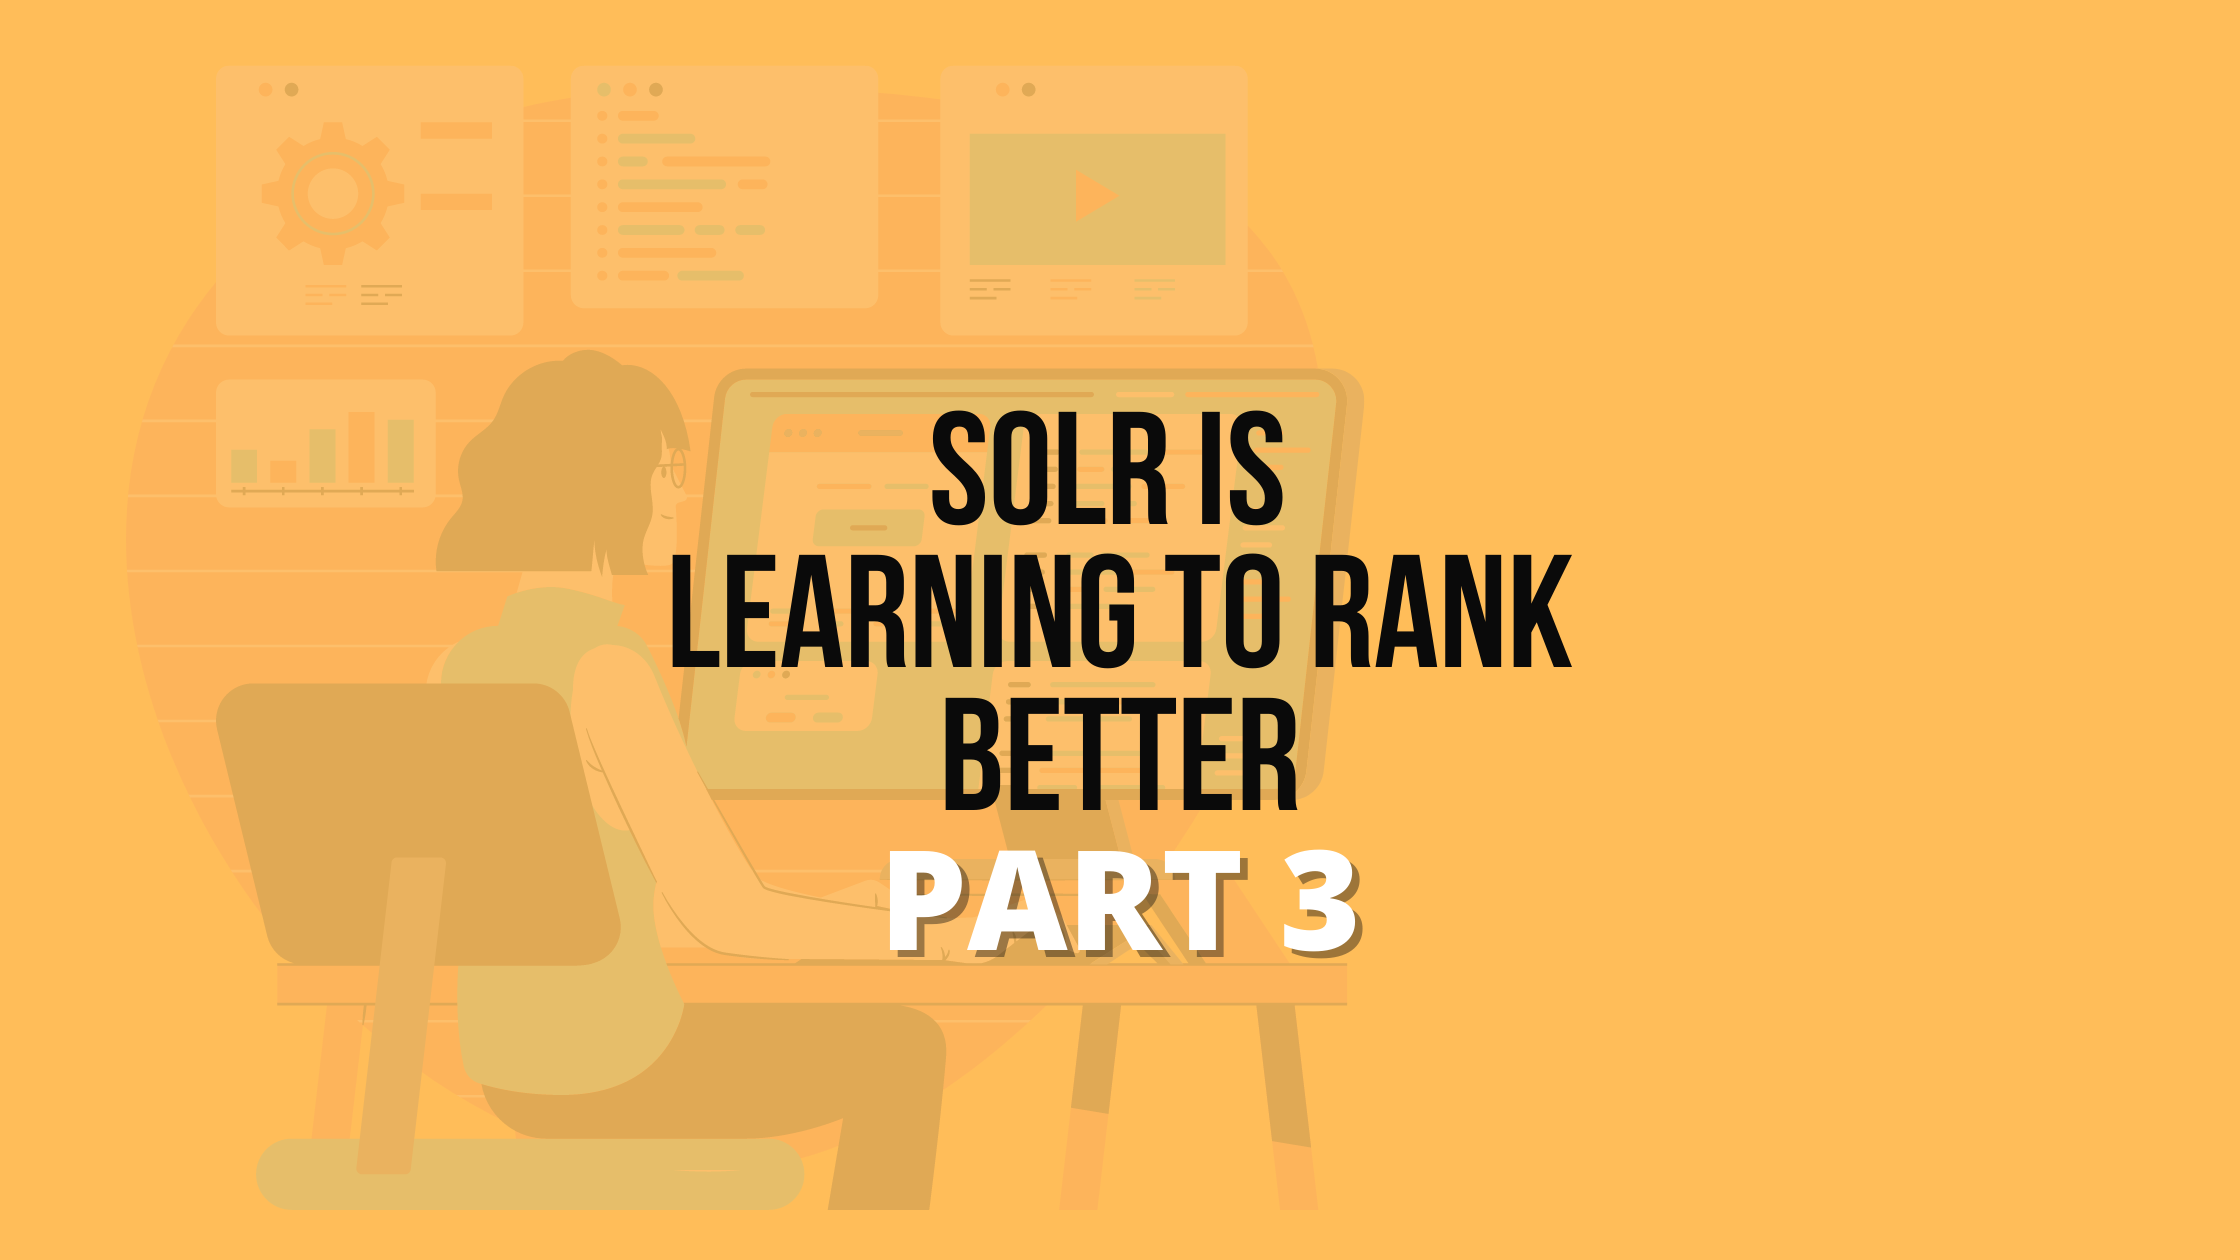 Solr Is Learning To Rank Better